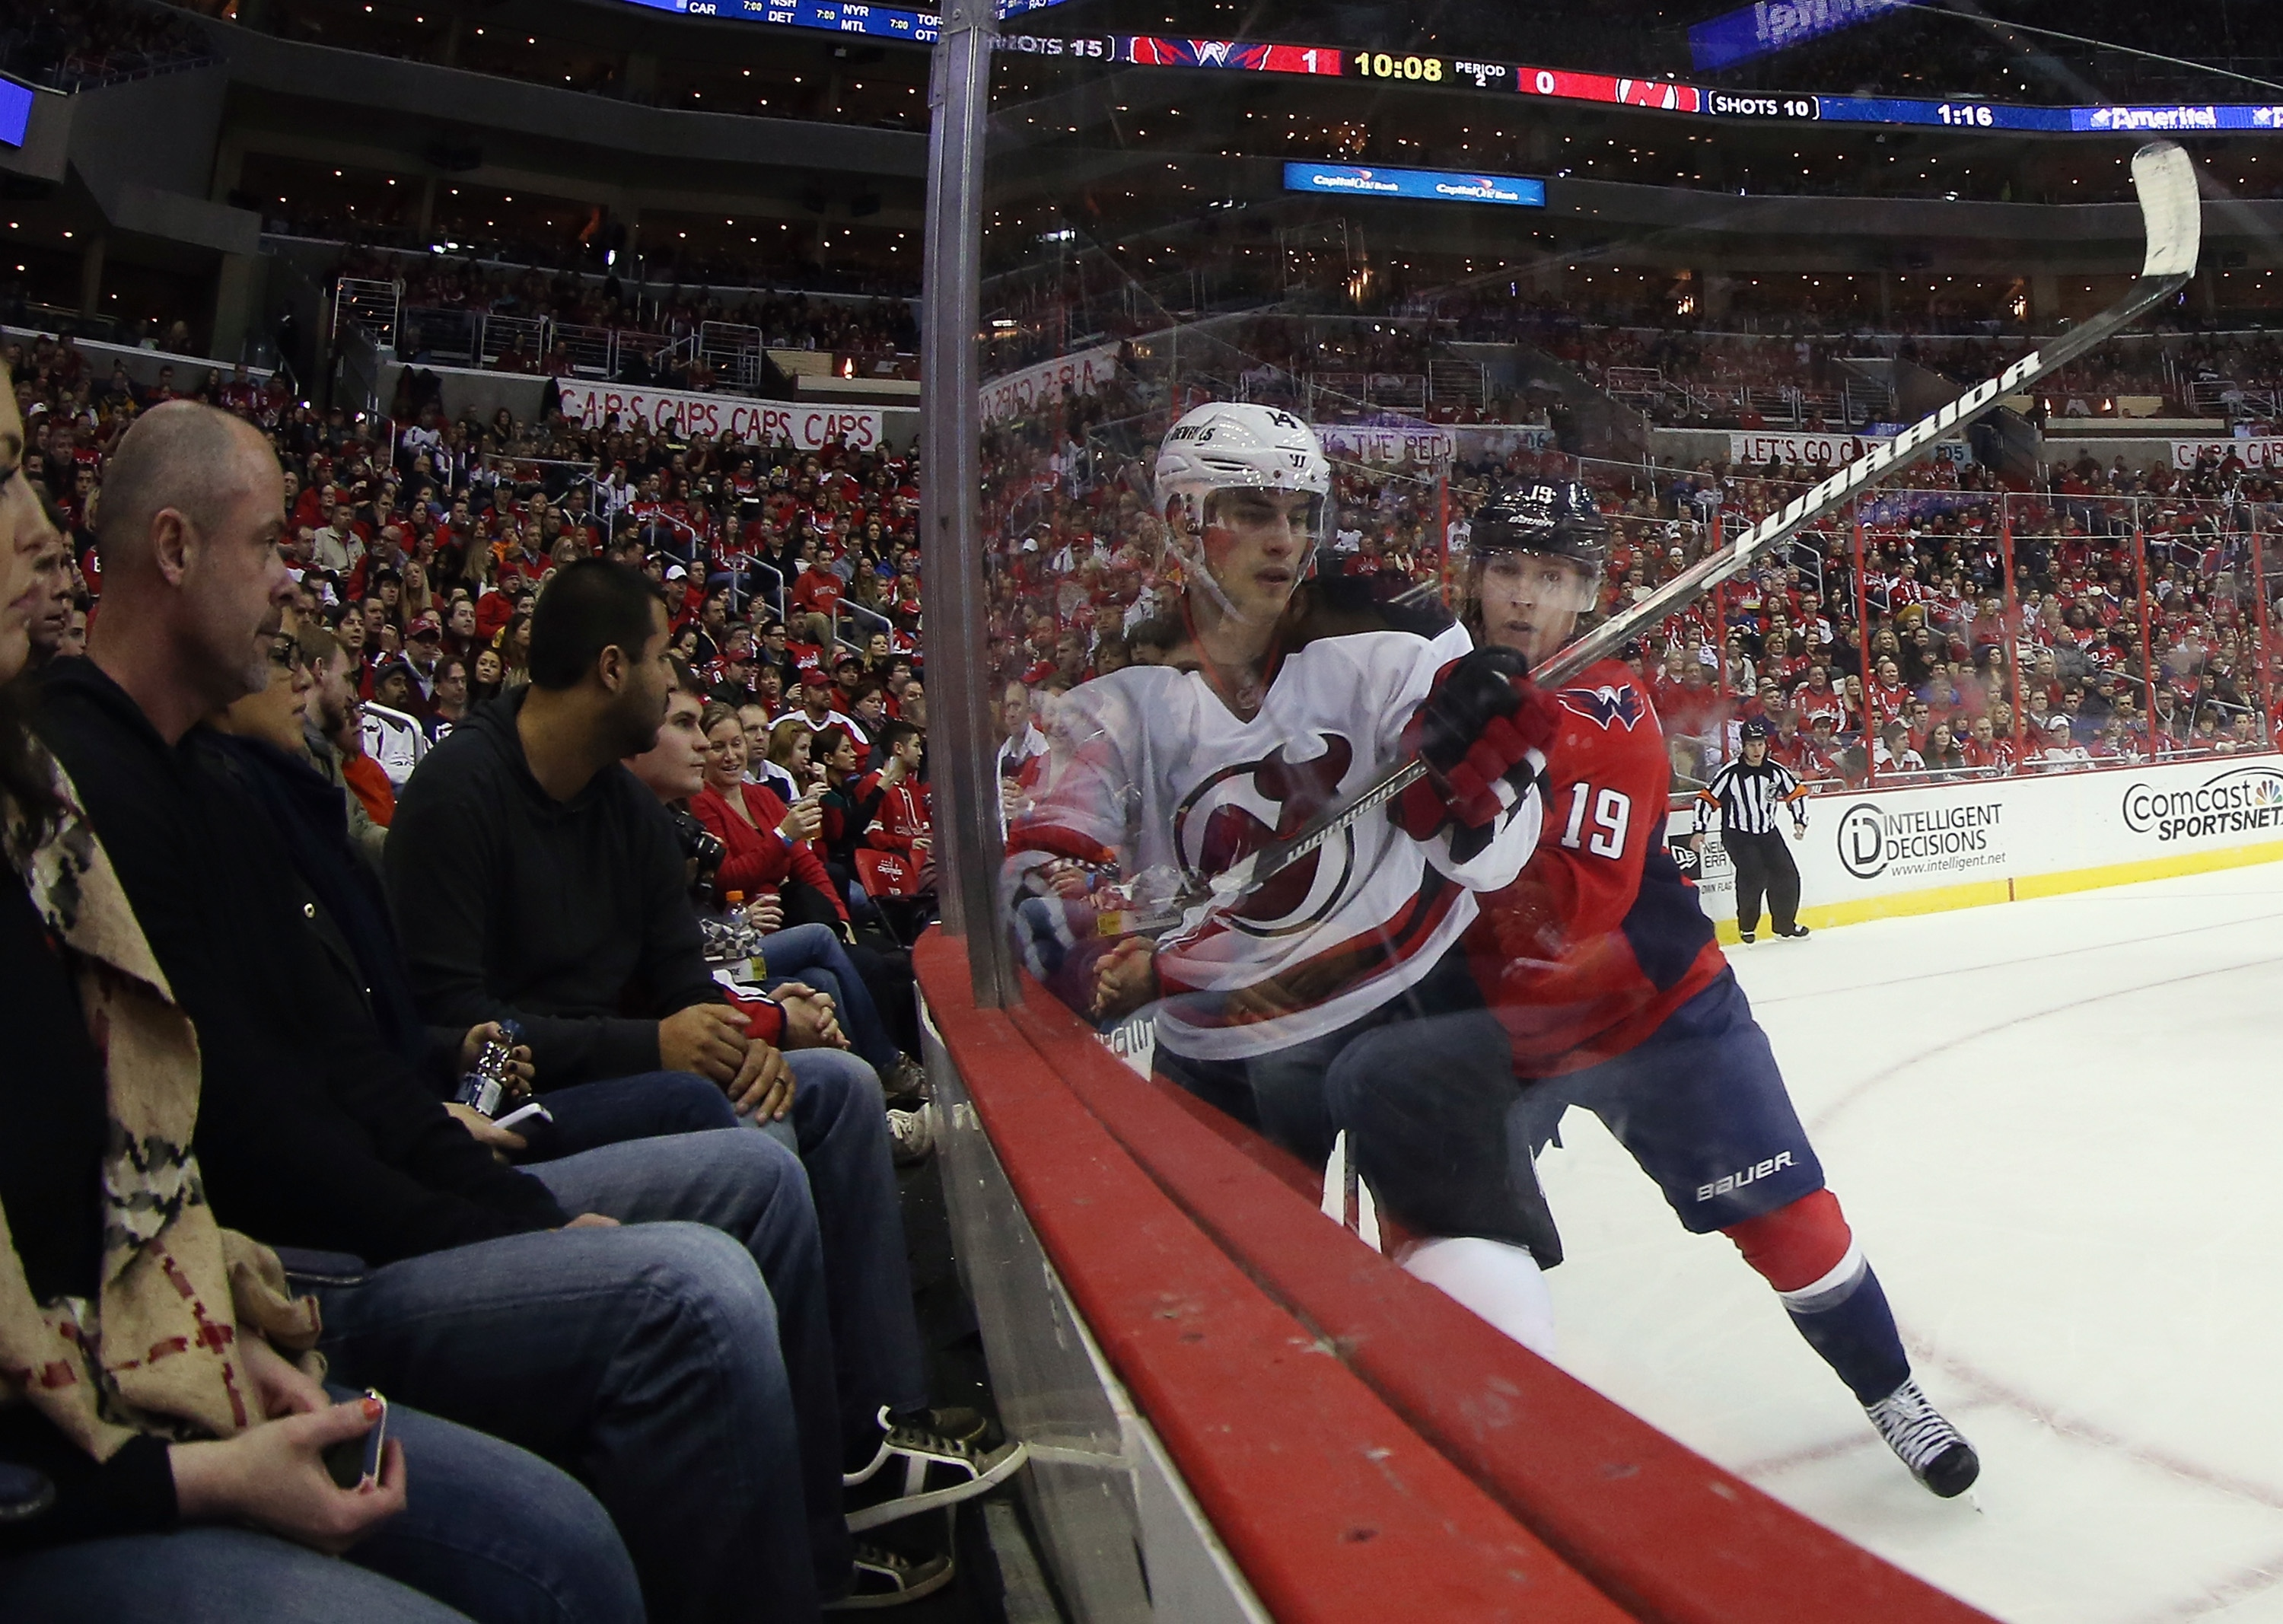 New Jersey Devils v Washington Capitals